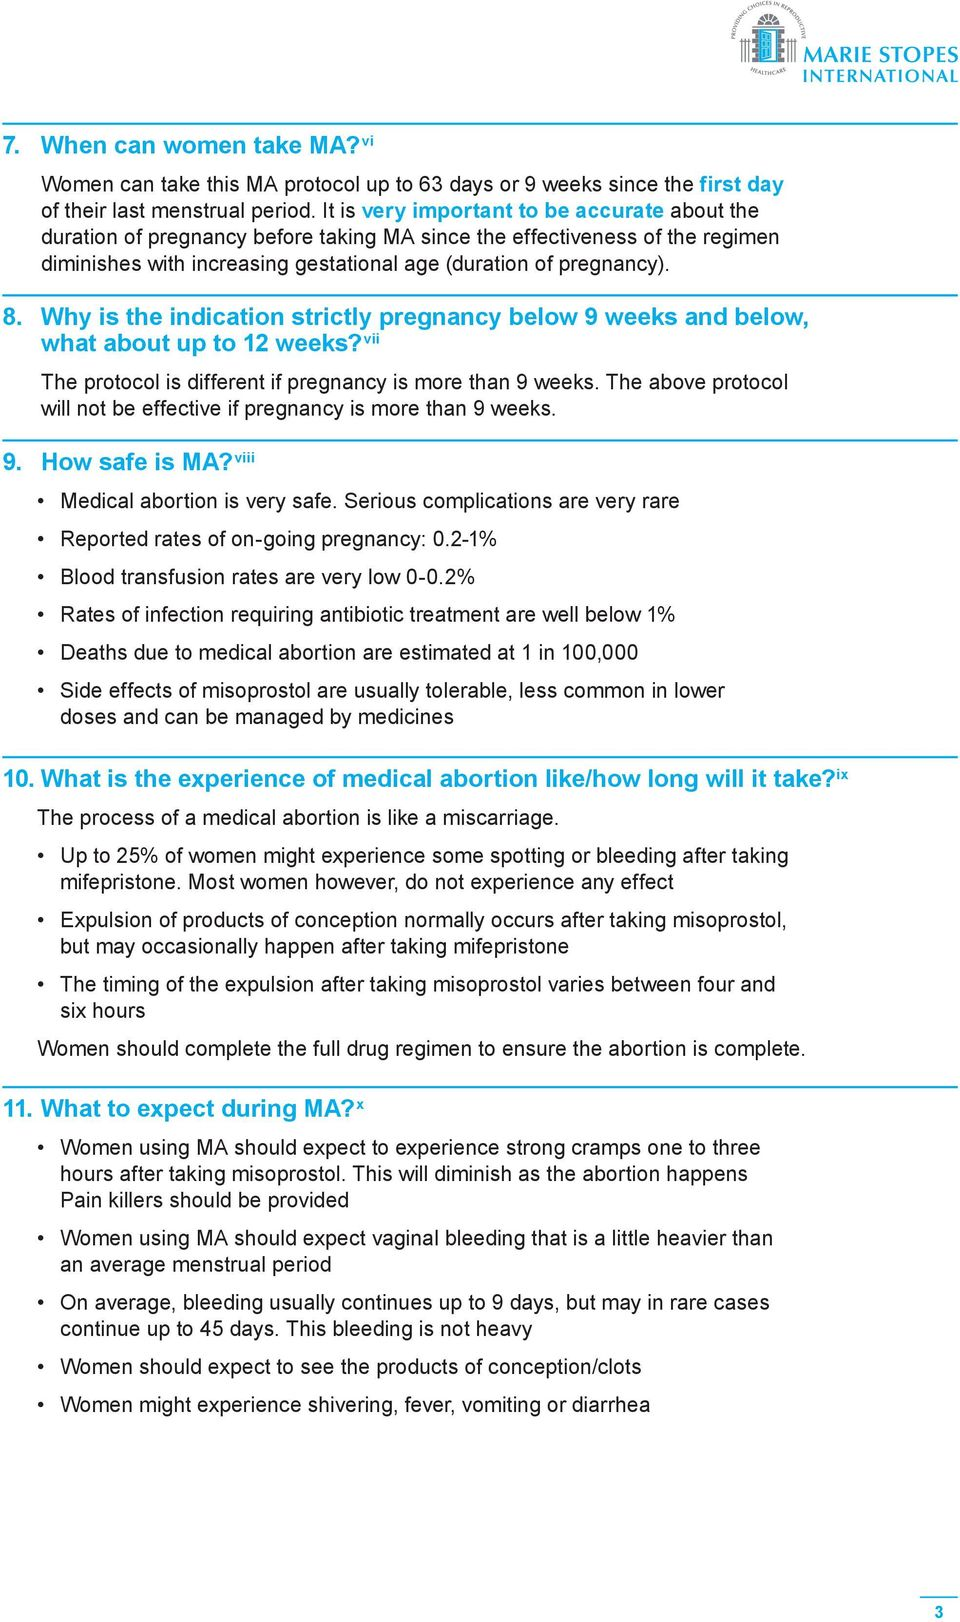 Frequently Asked Questions (FAQ) for Medical Abortion - PDF